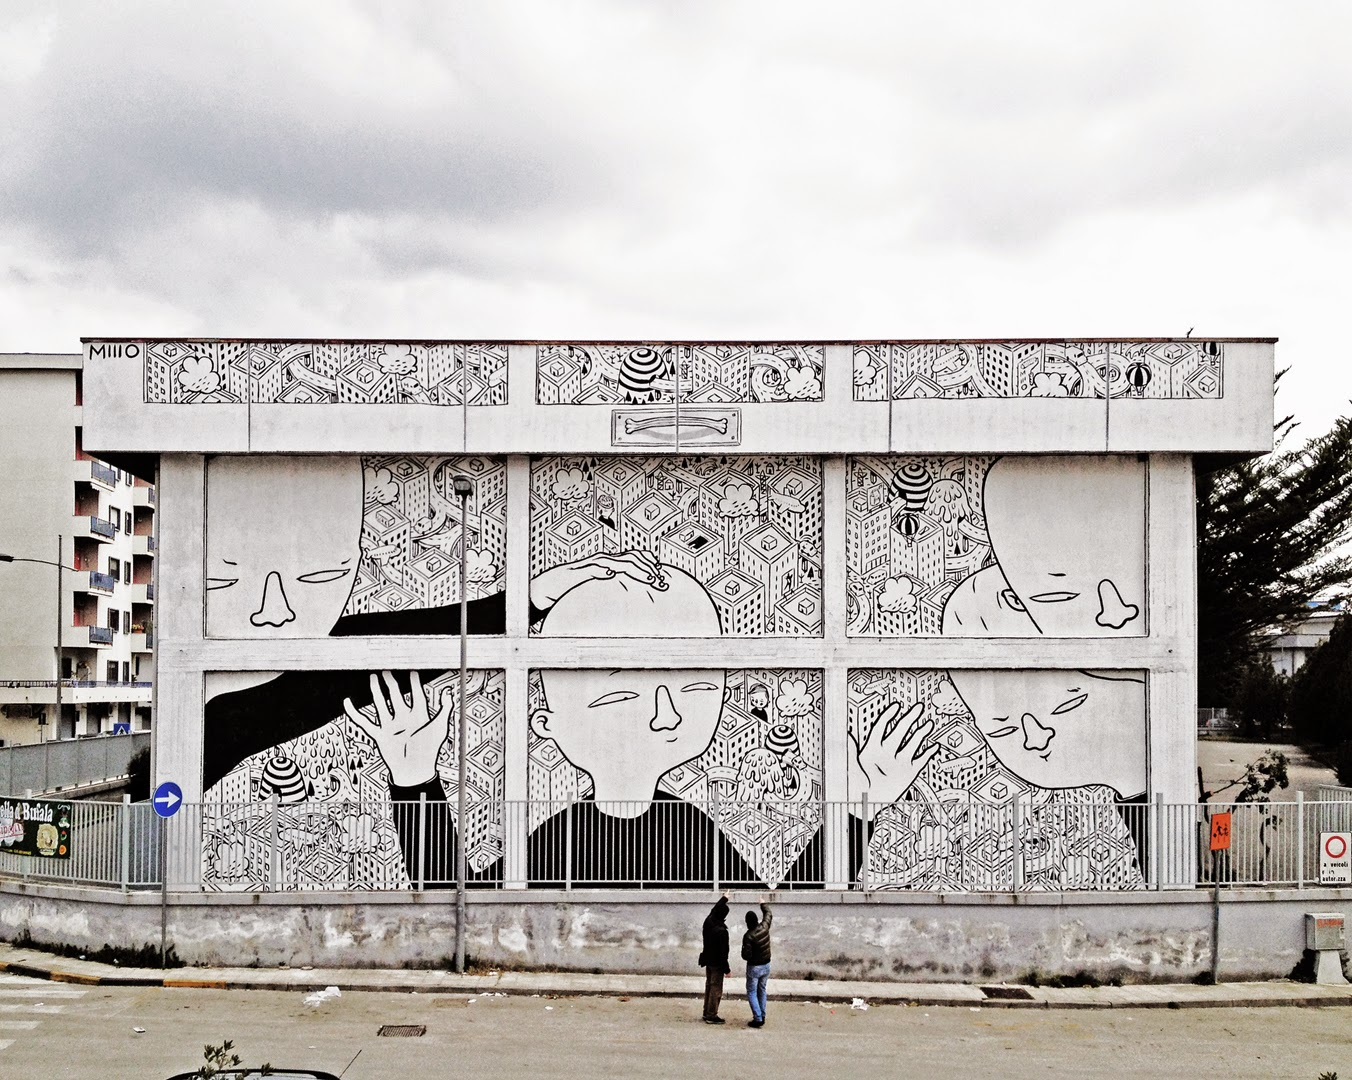 Millo just sent us a brand new series of images from his latest artwork which was recently completed on the side of a building in the city of Battipaglia in Italy.